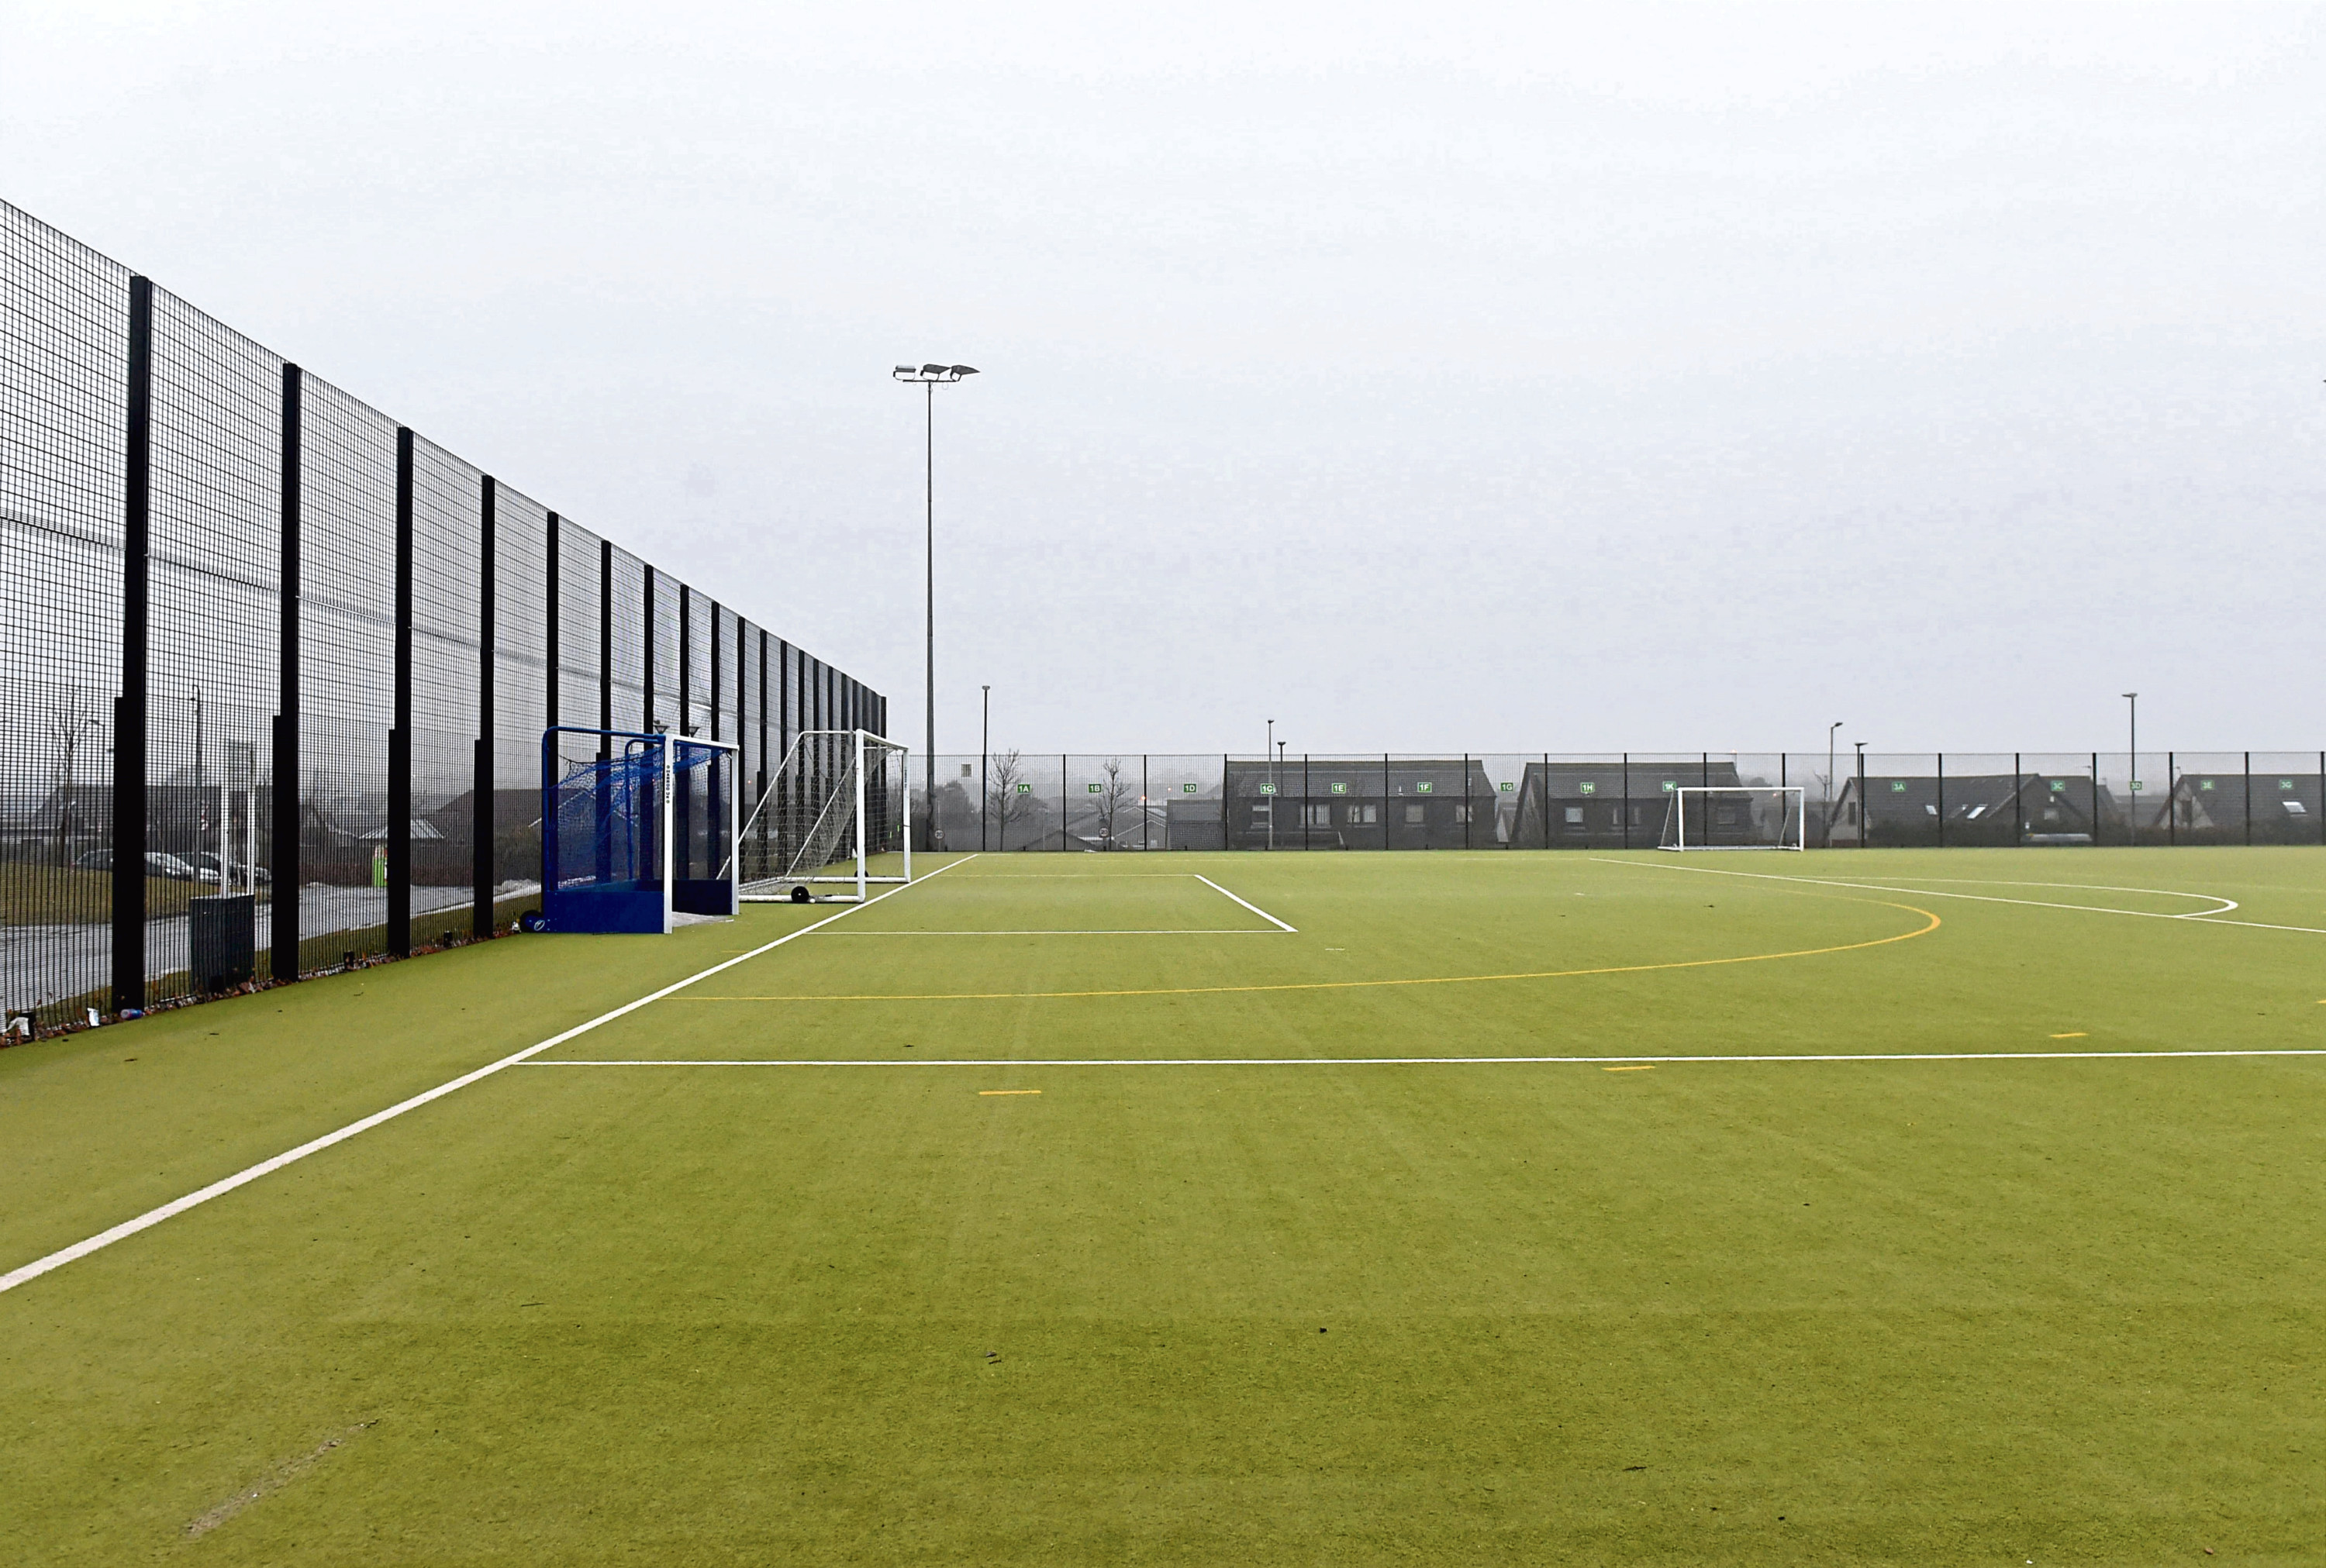 The existing pitch